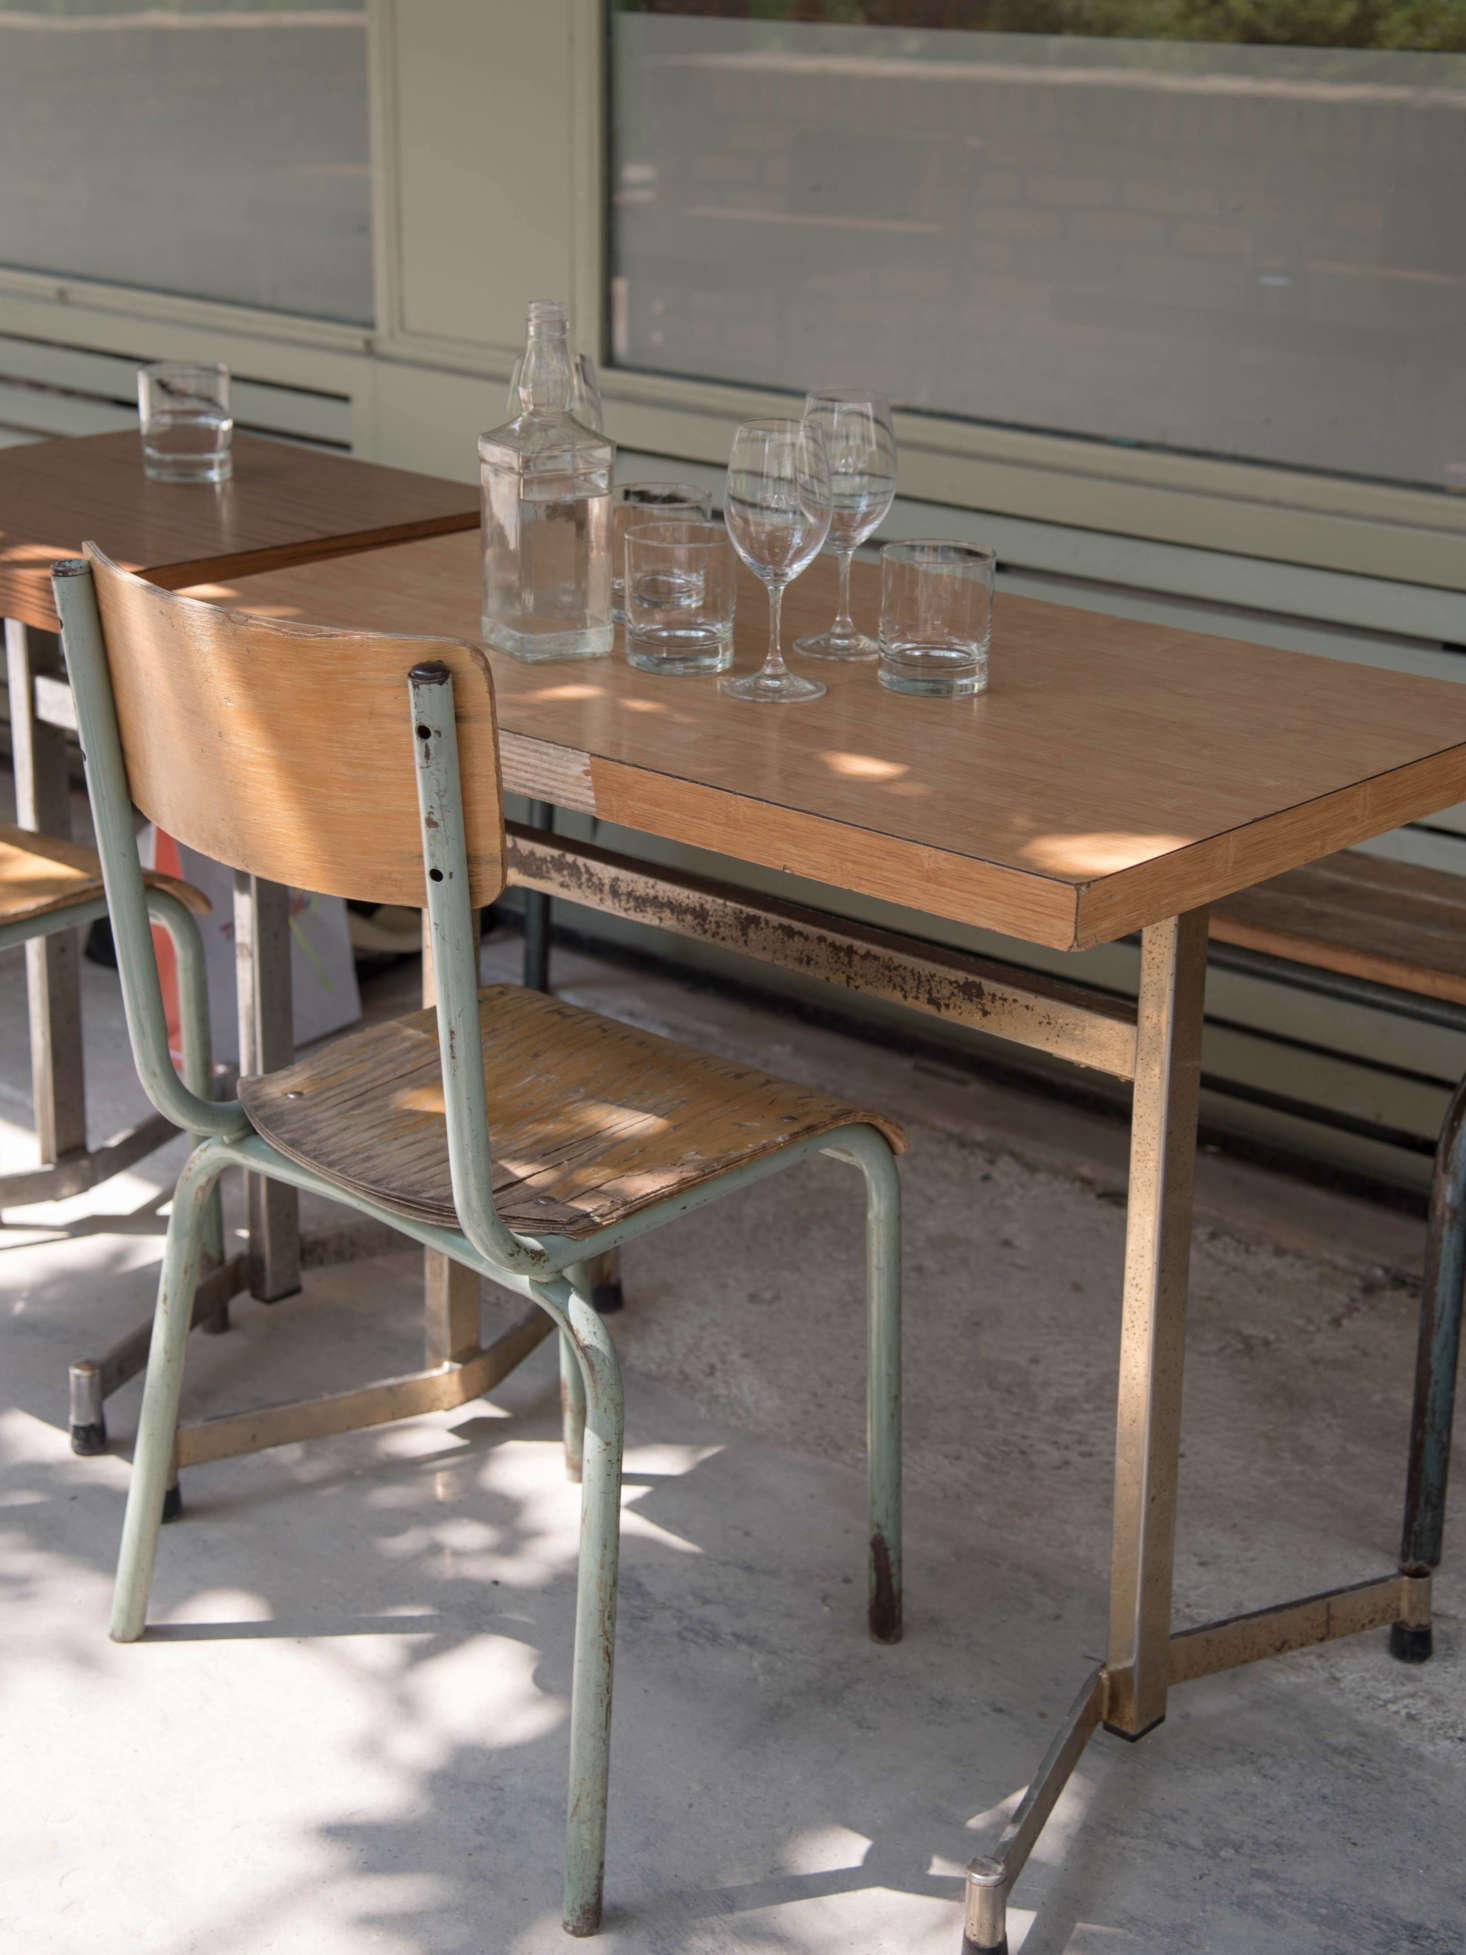 Outsidearevintage French school chairs and tables, sourced from a local brocante dealer. The team collected the glass water carafes(&#8